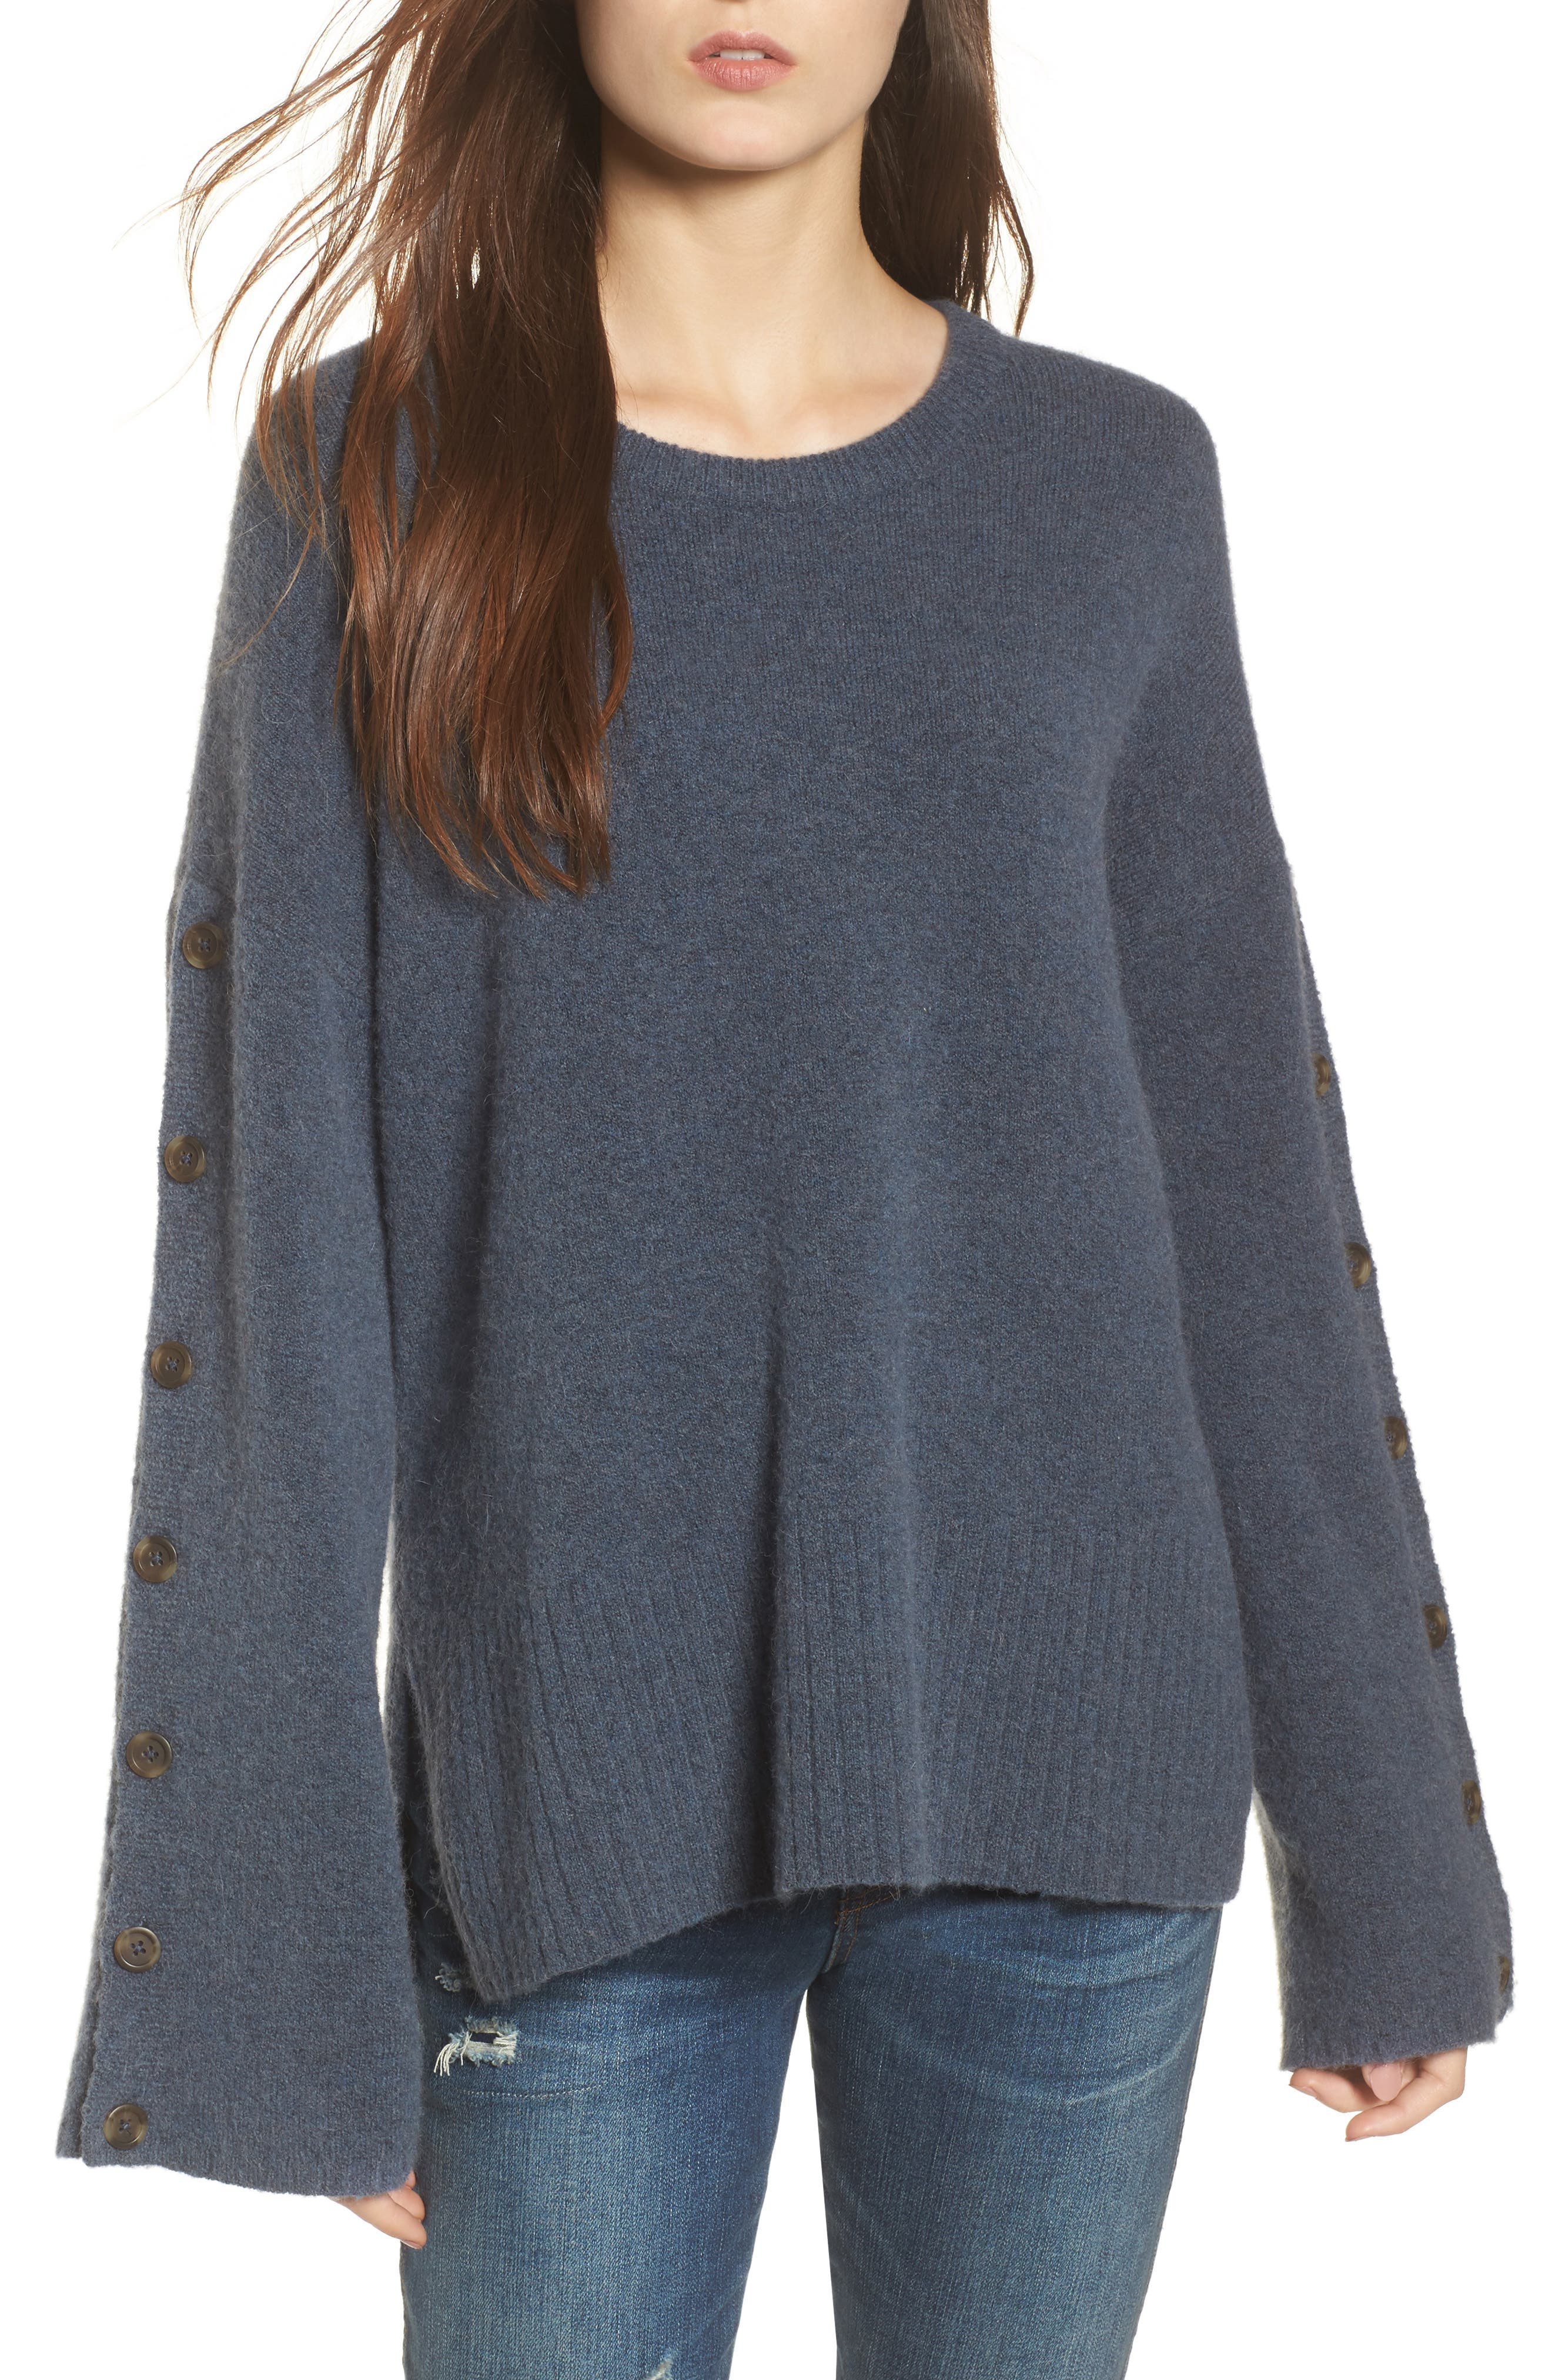 Alternate Image 1 Selected - Madewell Button Sleeve Pullover Sweater